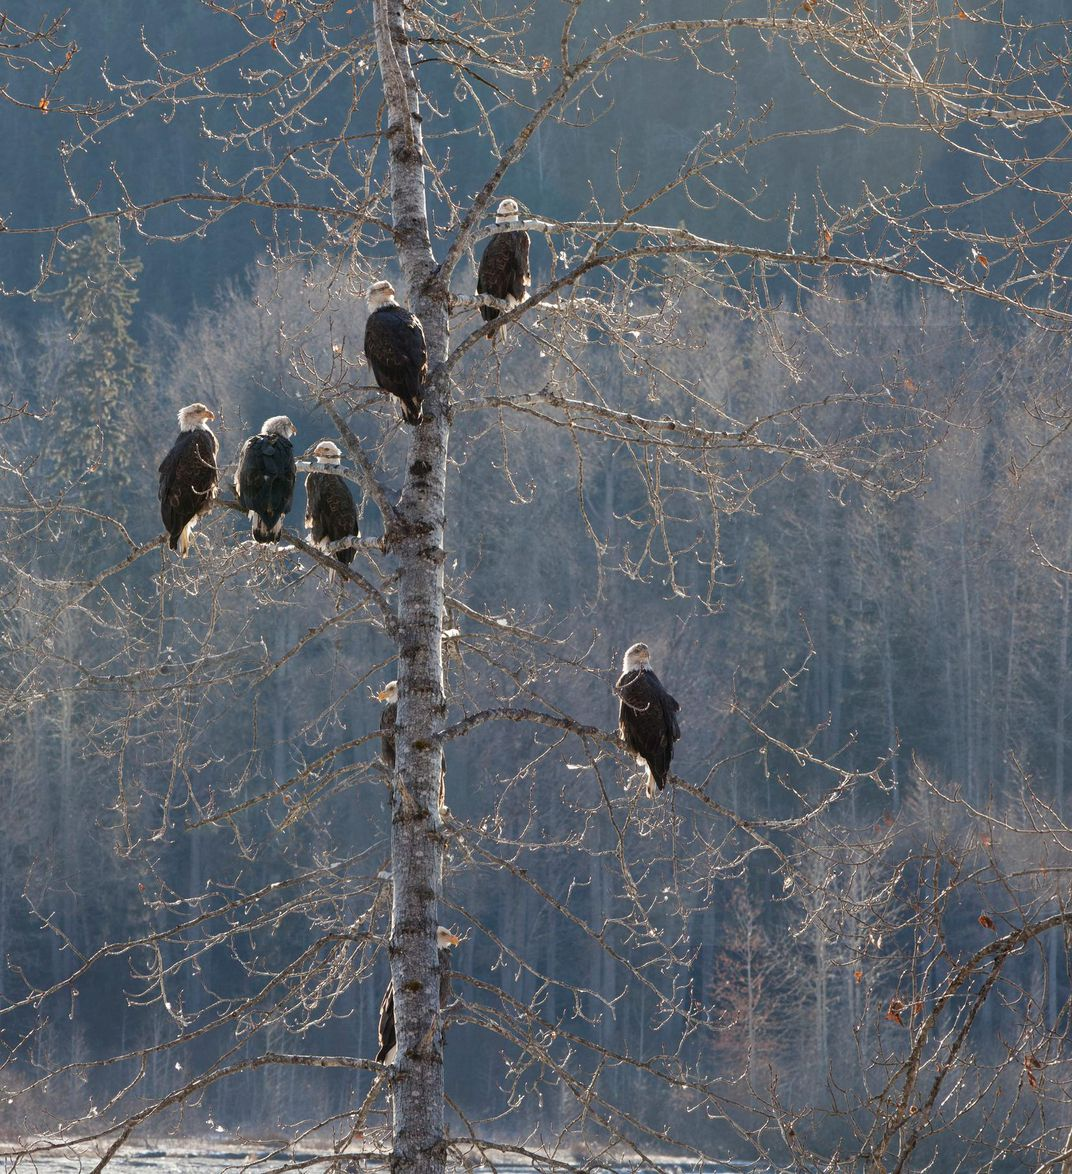 eagles basking in the sun